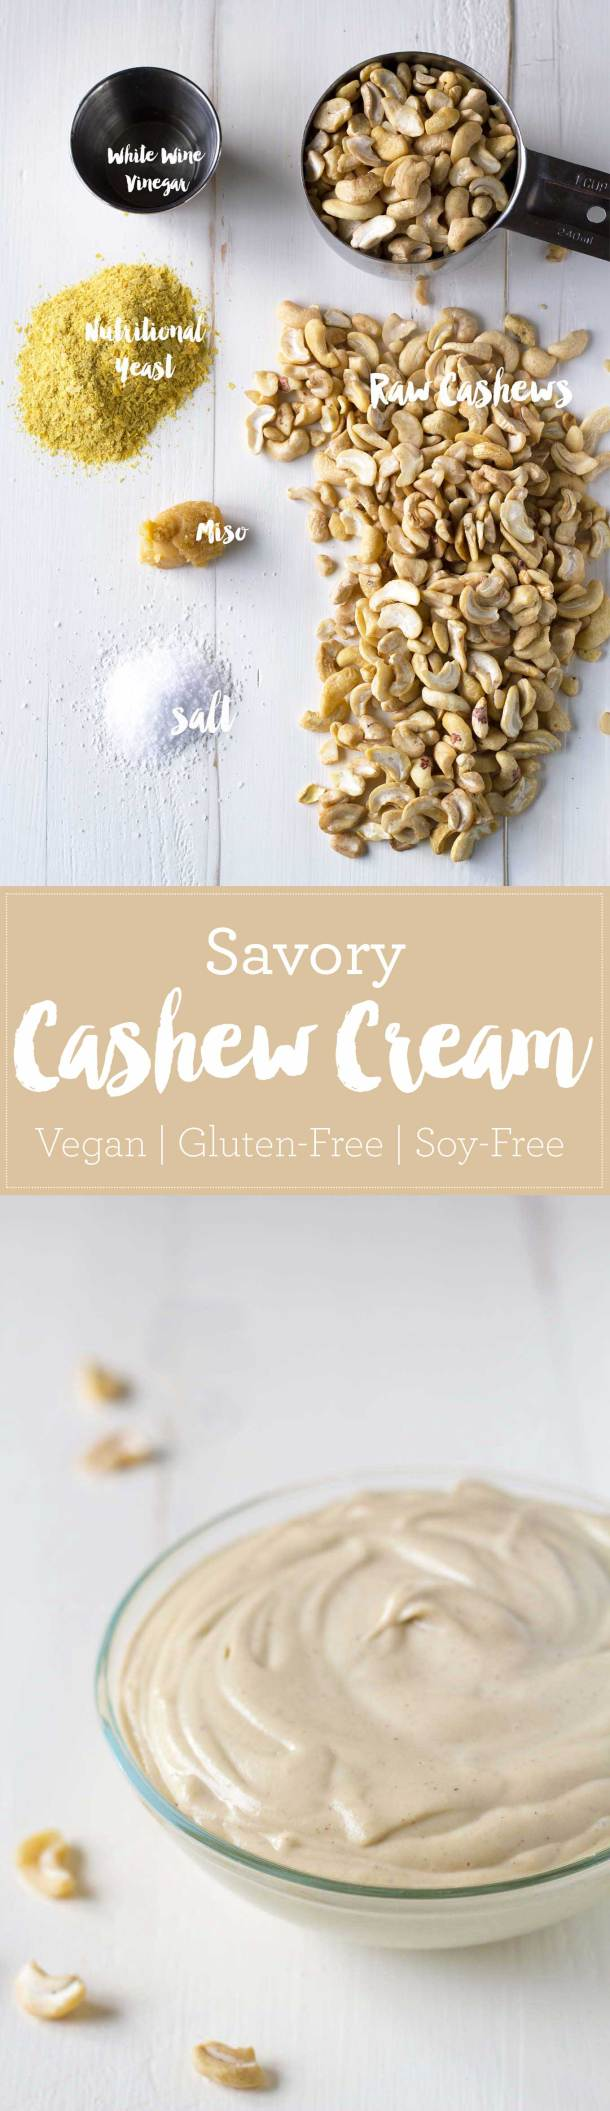 Use this savory cashew cream as a spread, add it to soups as a thickener, or use a soy-free vegan mayonnaise substitute! | https://passtheplants.com